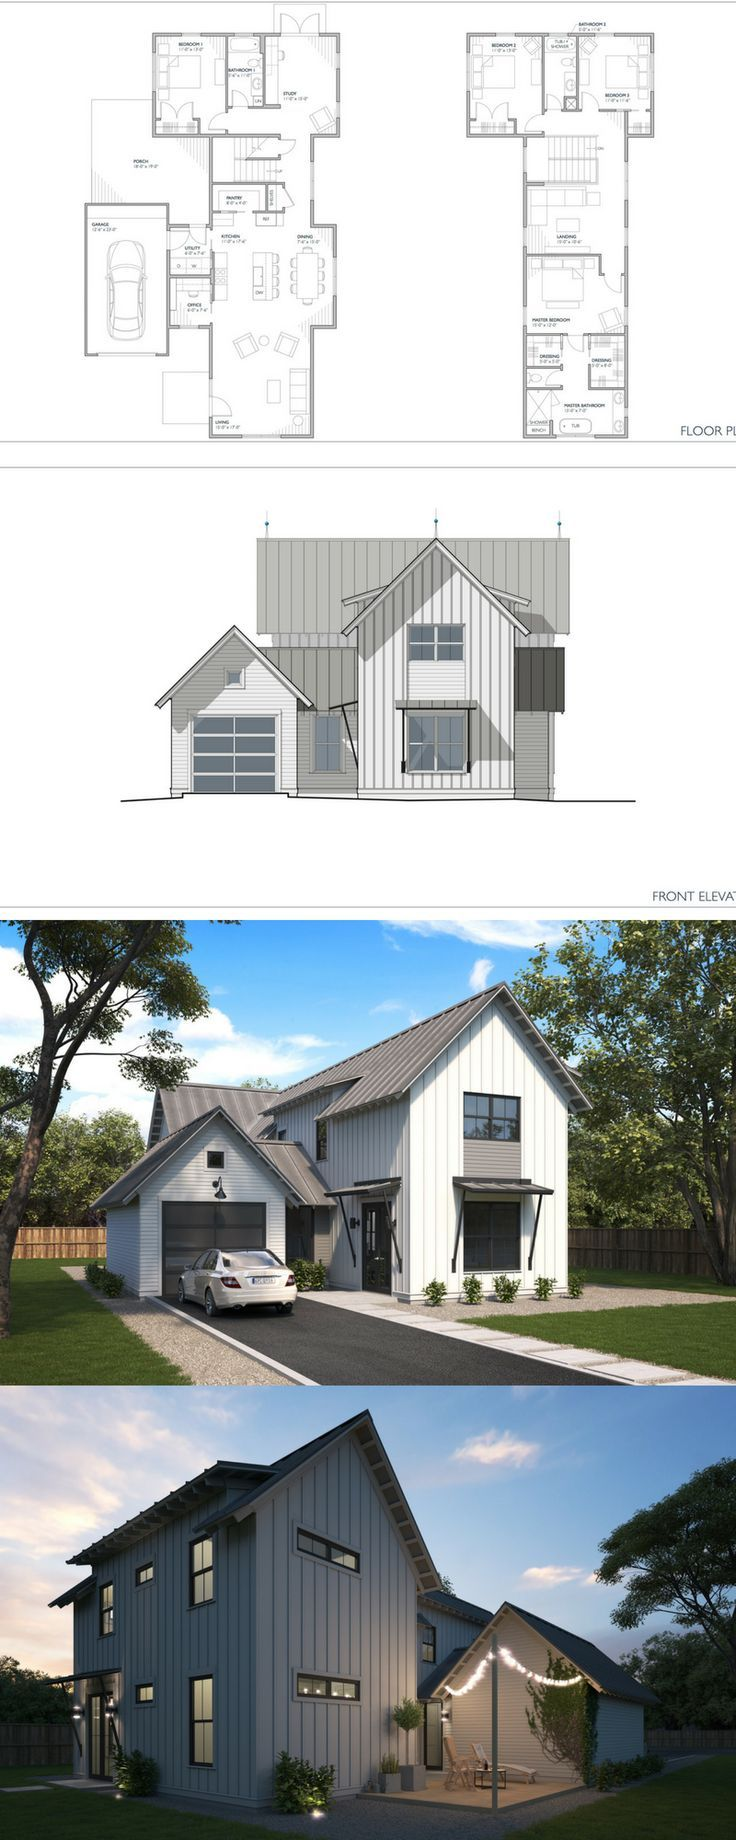 Great modern farmhouse style house plan! two story home with ... on styles of screened in porches, two-story small house plans, two-story house styles, country homes with porches, two-story white house, two-story cottage floor plans, two-story craftsman house plans, two-story ranch house plans, victorian porches, two-story square house plan, two-story beach house plans, homes with small porches, two-story house with pool, two-story house types, ranch homes with front porches, two-story modern homes, two-story narrow lot house plans, two-story tree house, two-story house with porch,